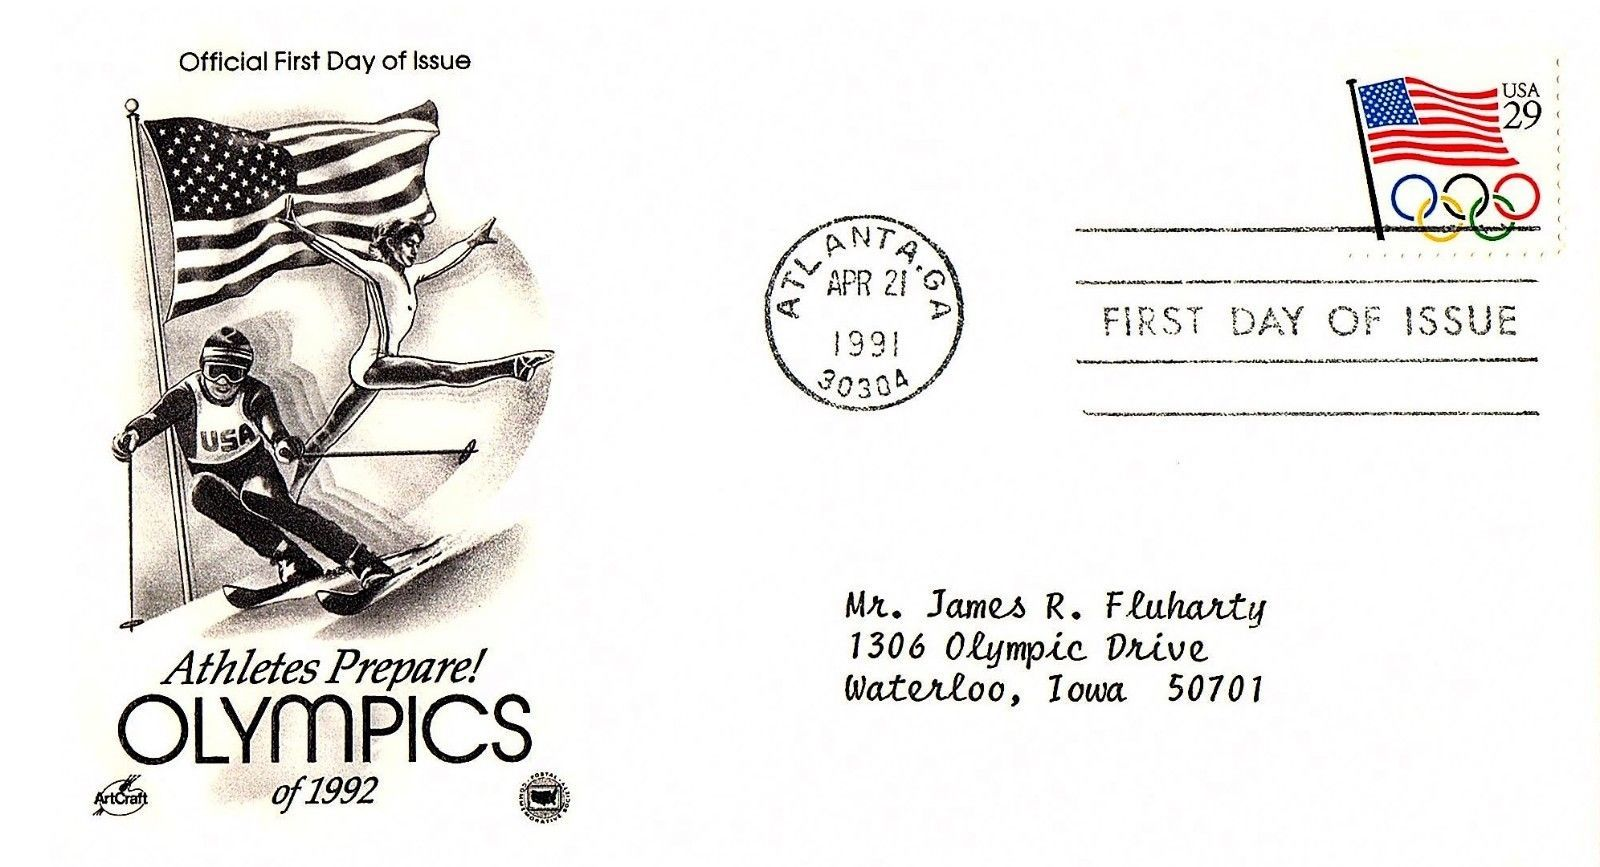 April 21, 1991 First Day of Issue, Postal Society Cover, Olympic Flag Athletes